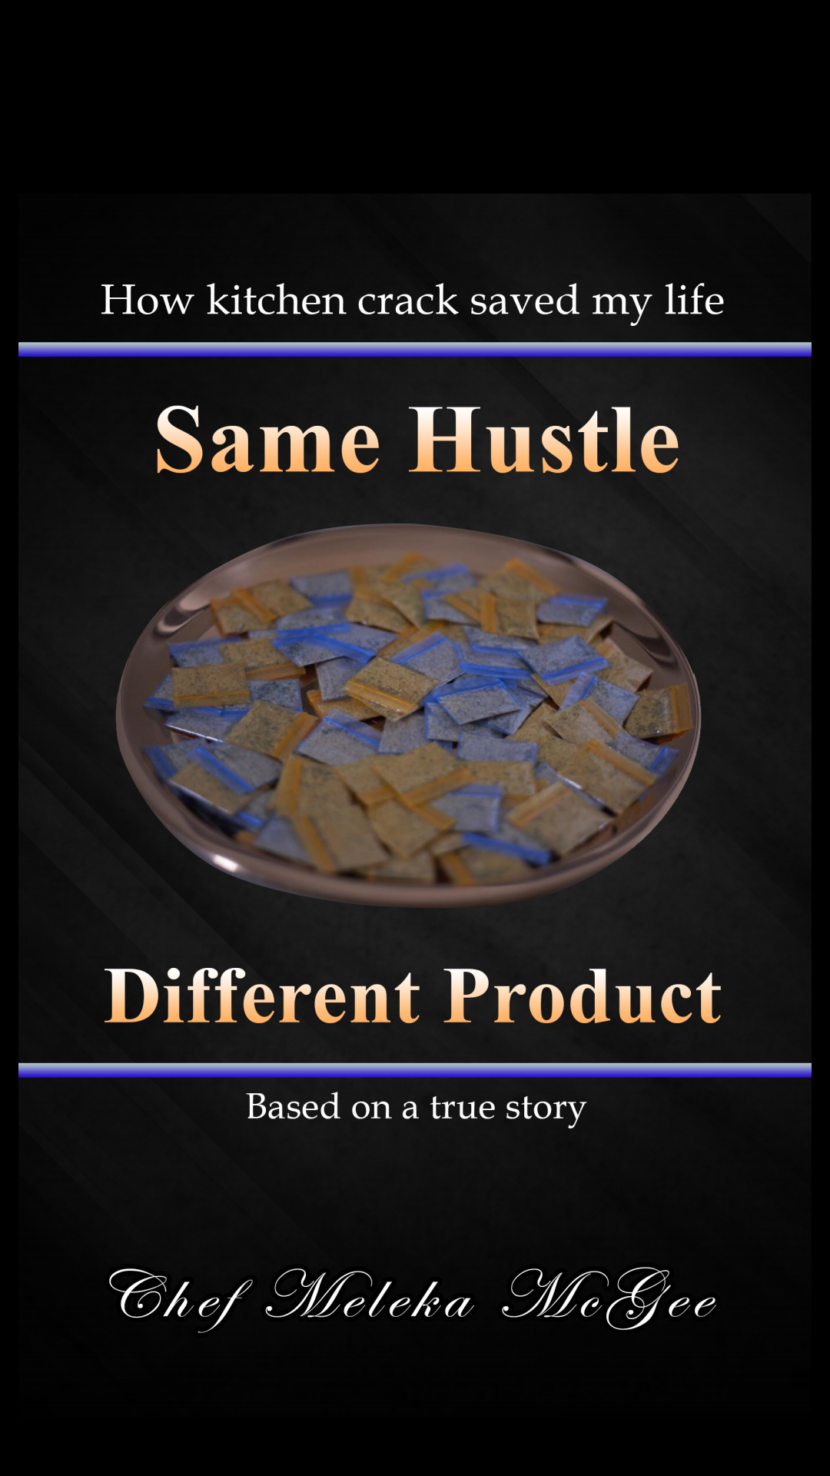 Same Hustle, Different Product